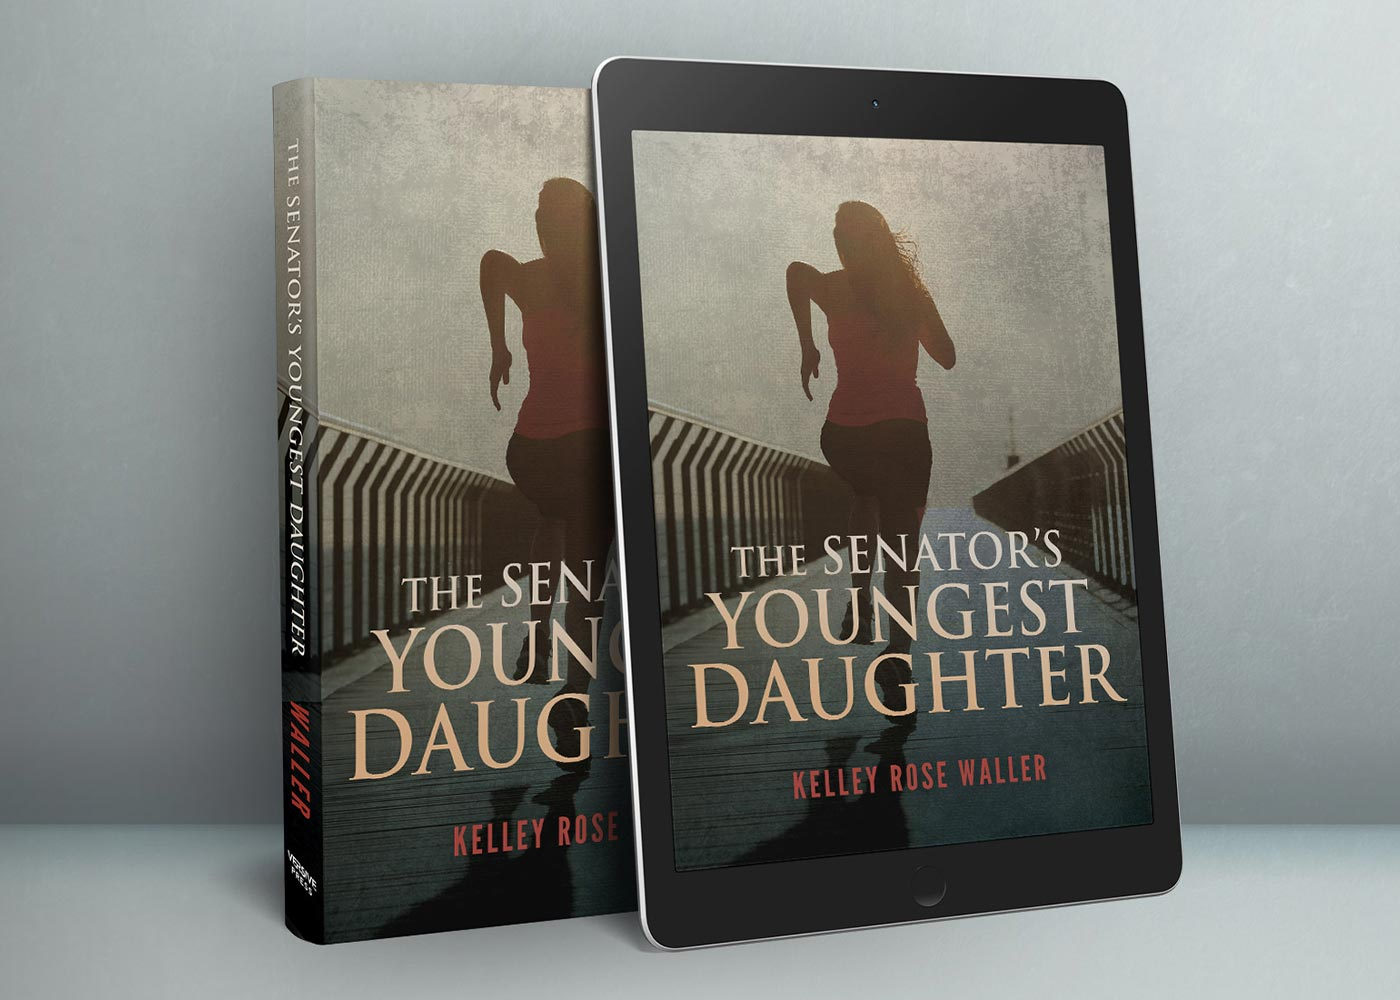 The Senator's Youngest Daughter By Kelley Rose Waller